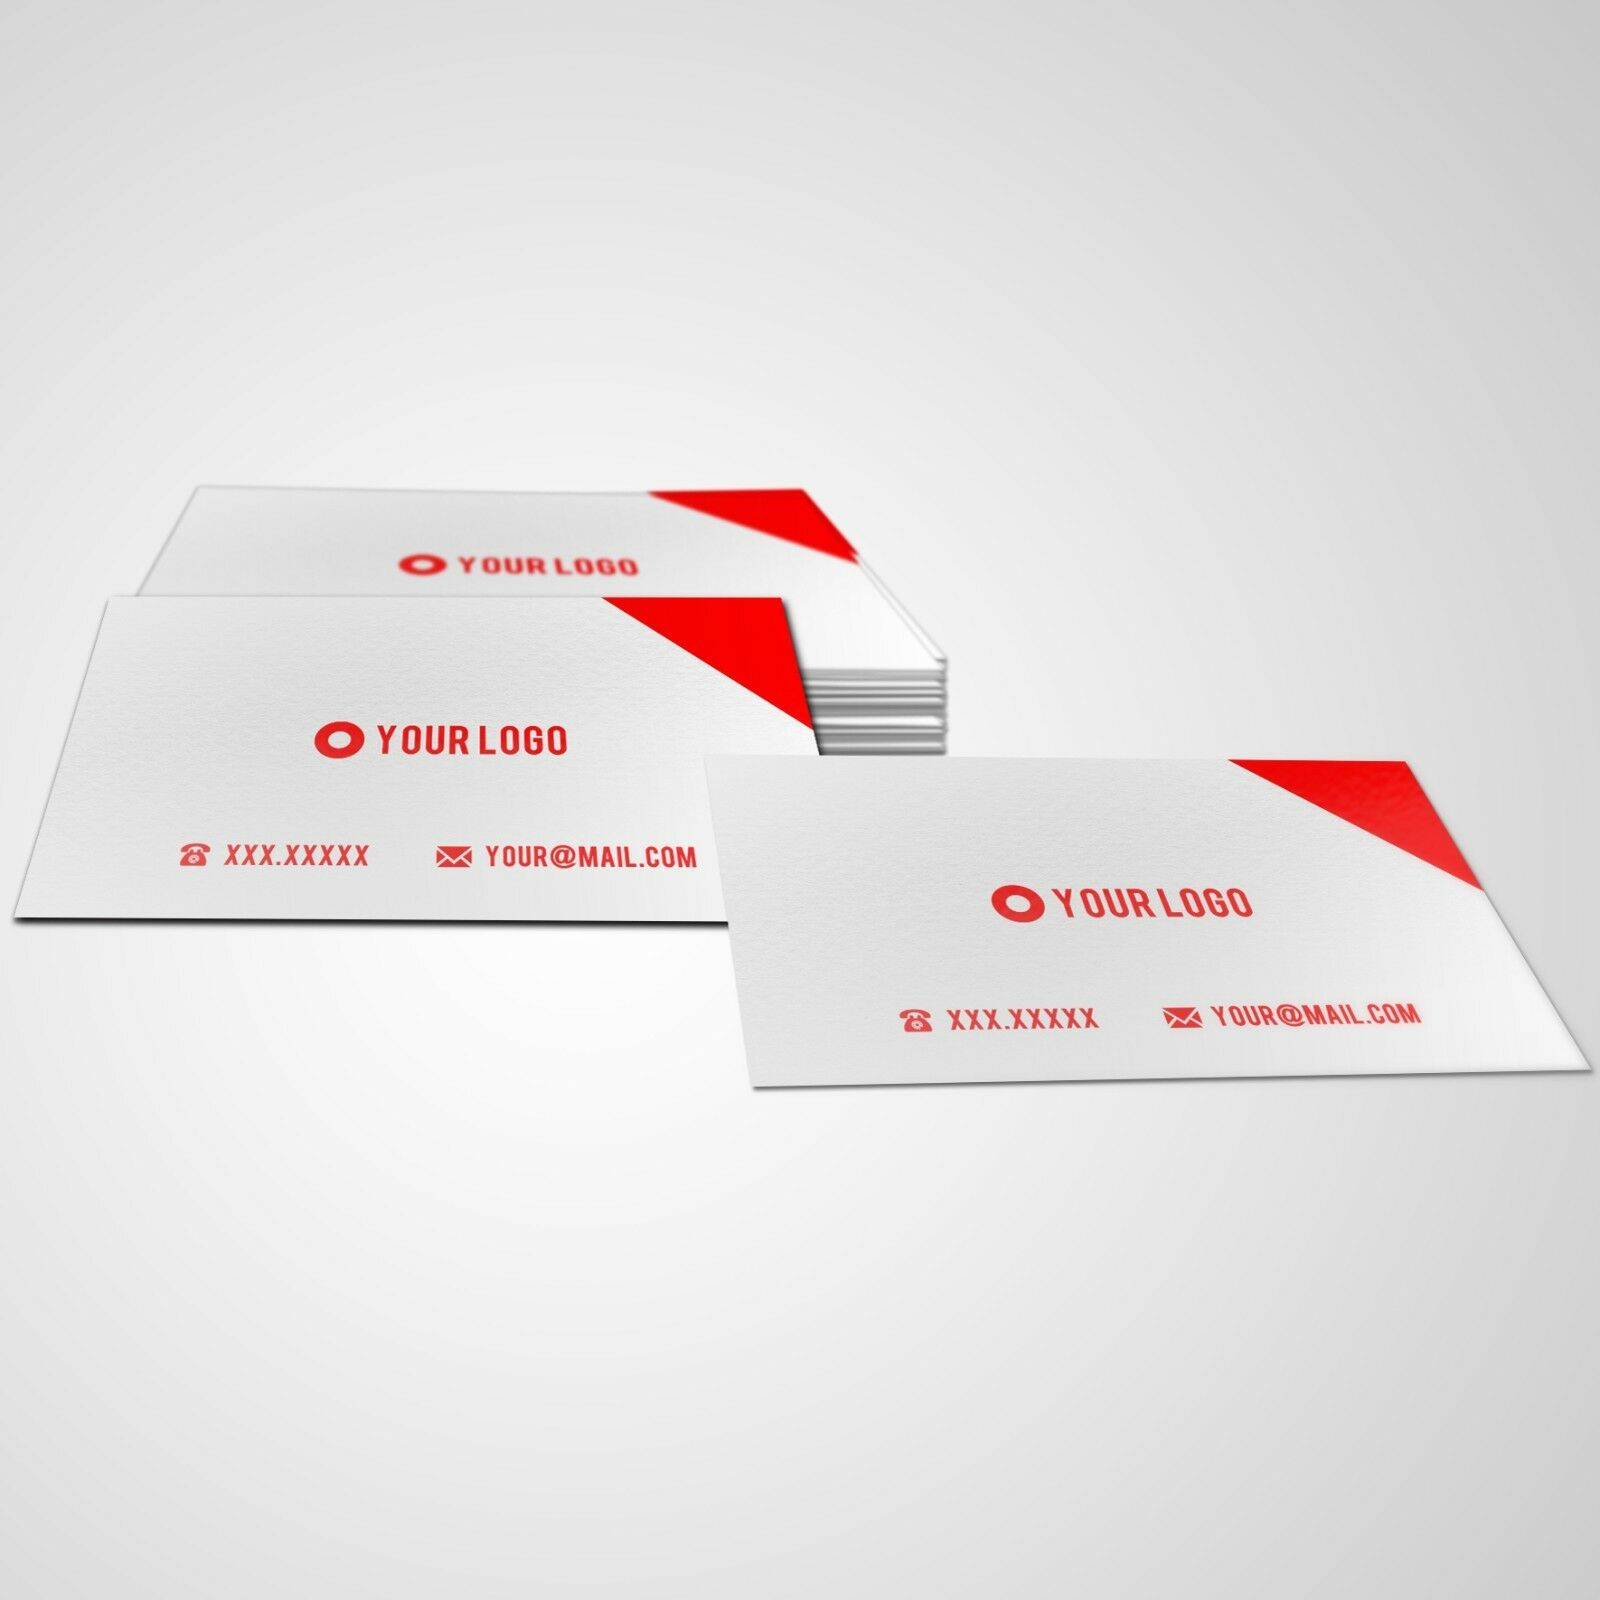 Print 1000 Custom Business Cards - Matte Finish - Single or Double Sided - $18